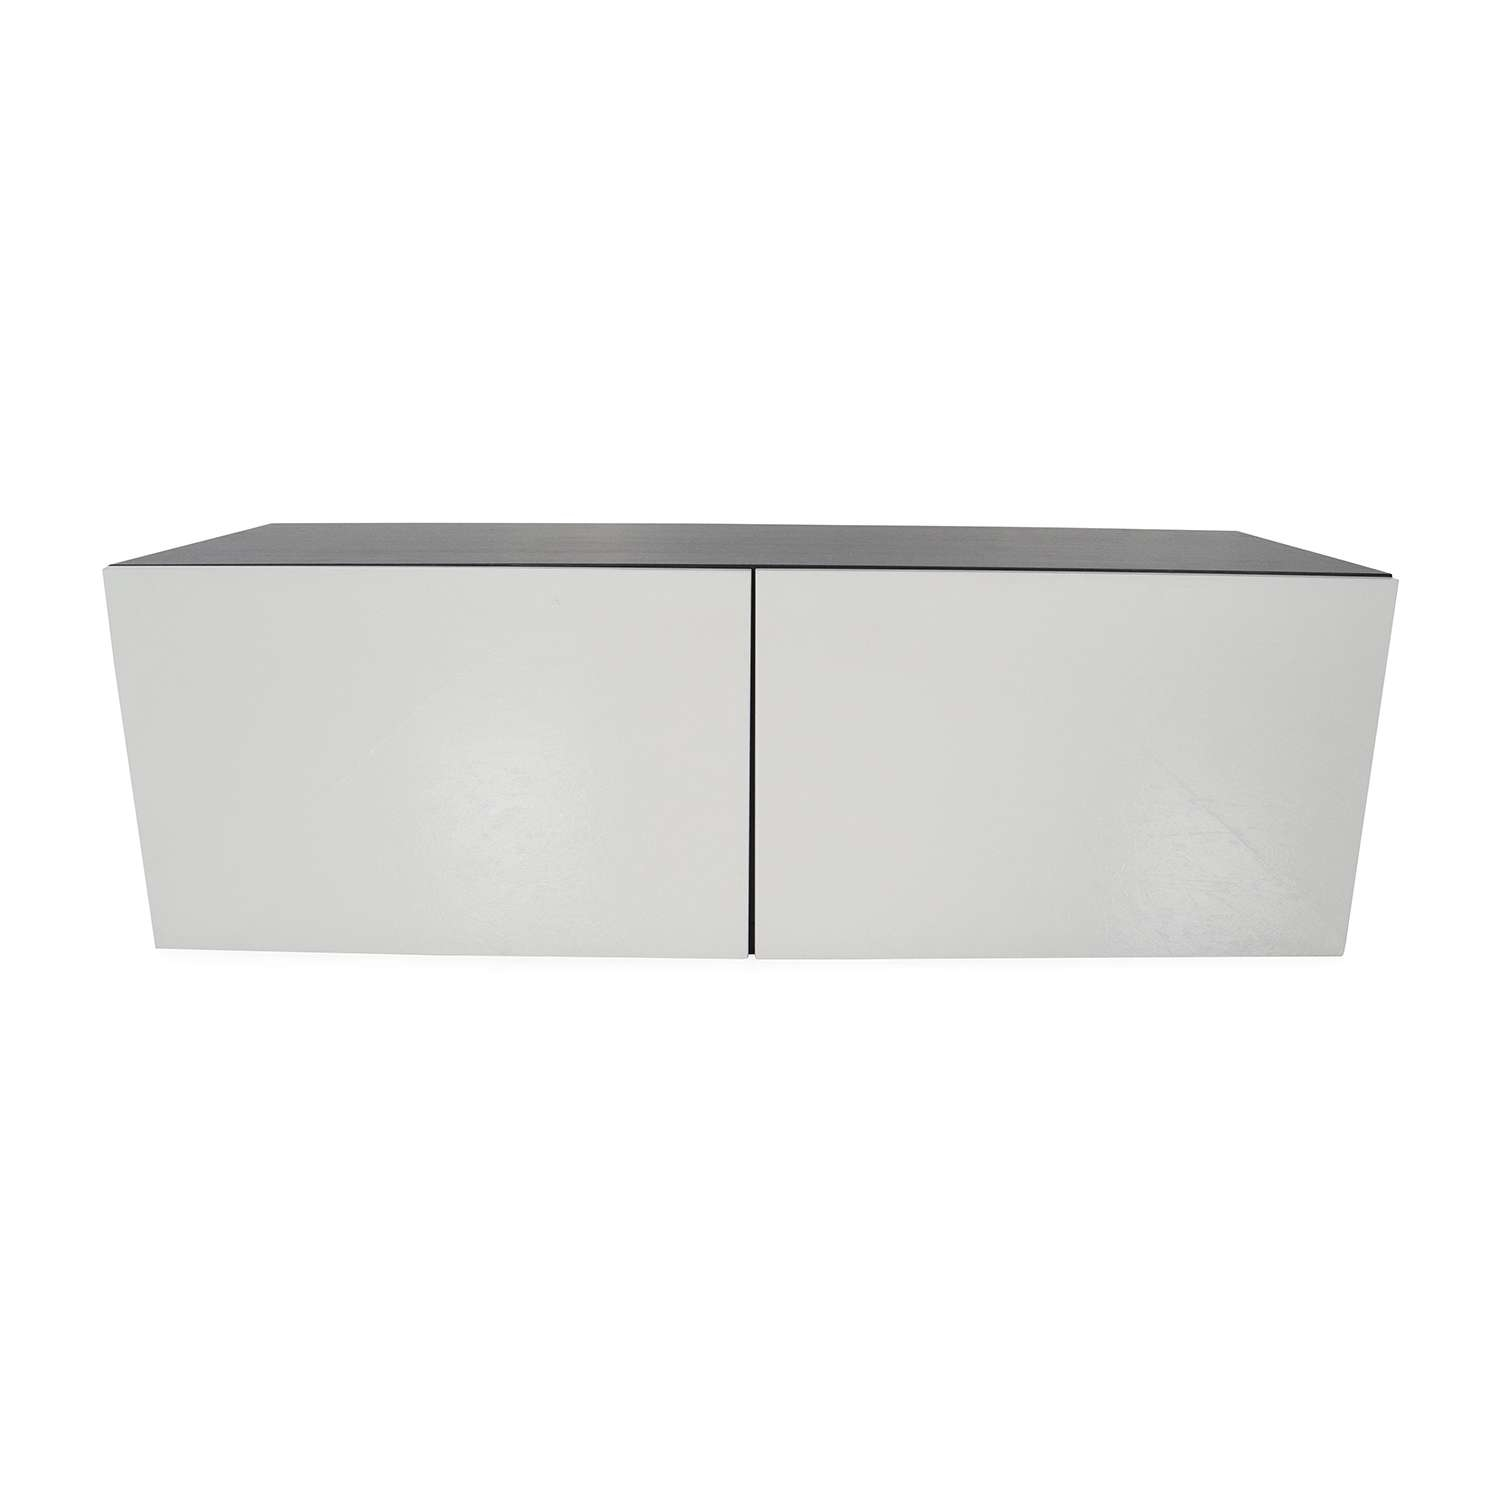 84% Off – Ikea Ikea Low Cabinet / Storage Intended For Ikea Sideboards (View 1 of 20)